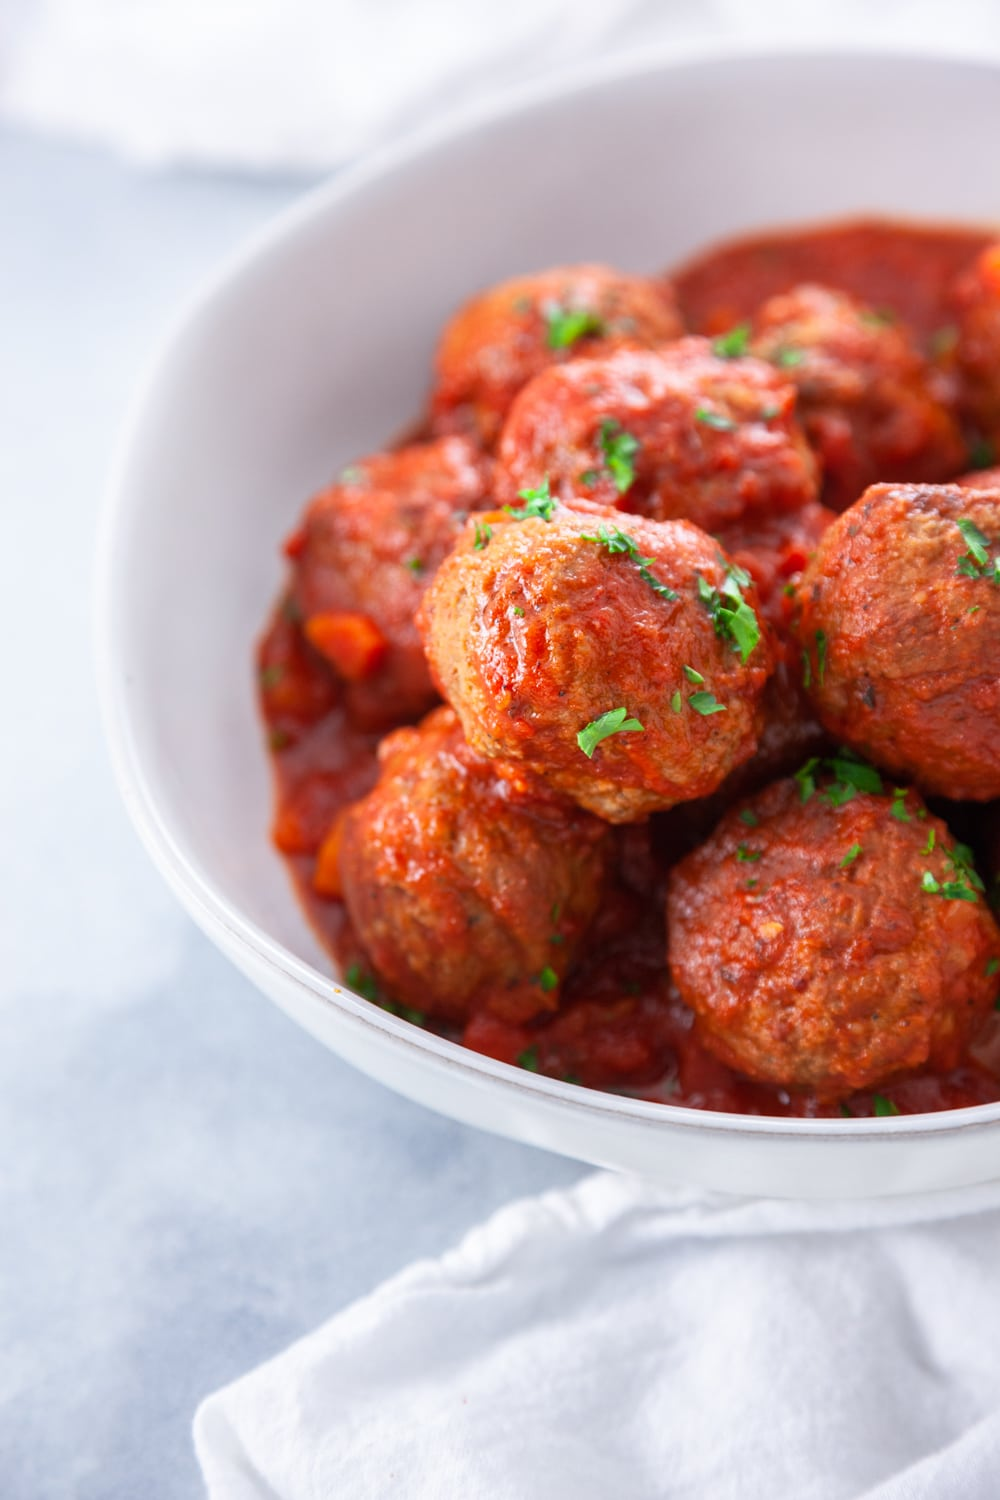 Italian Meatballs with Red Sauce in a white bowl.